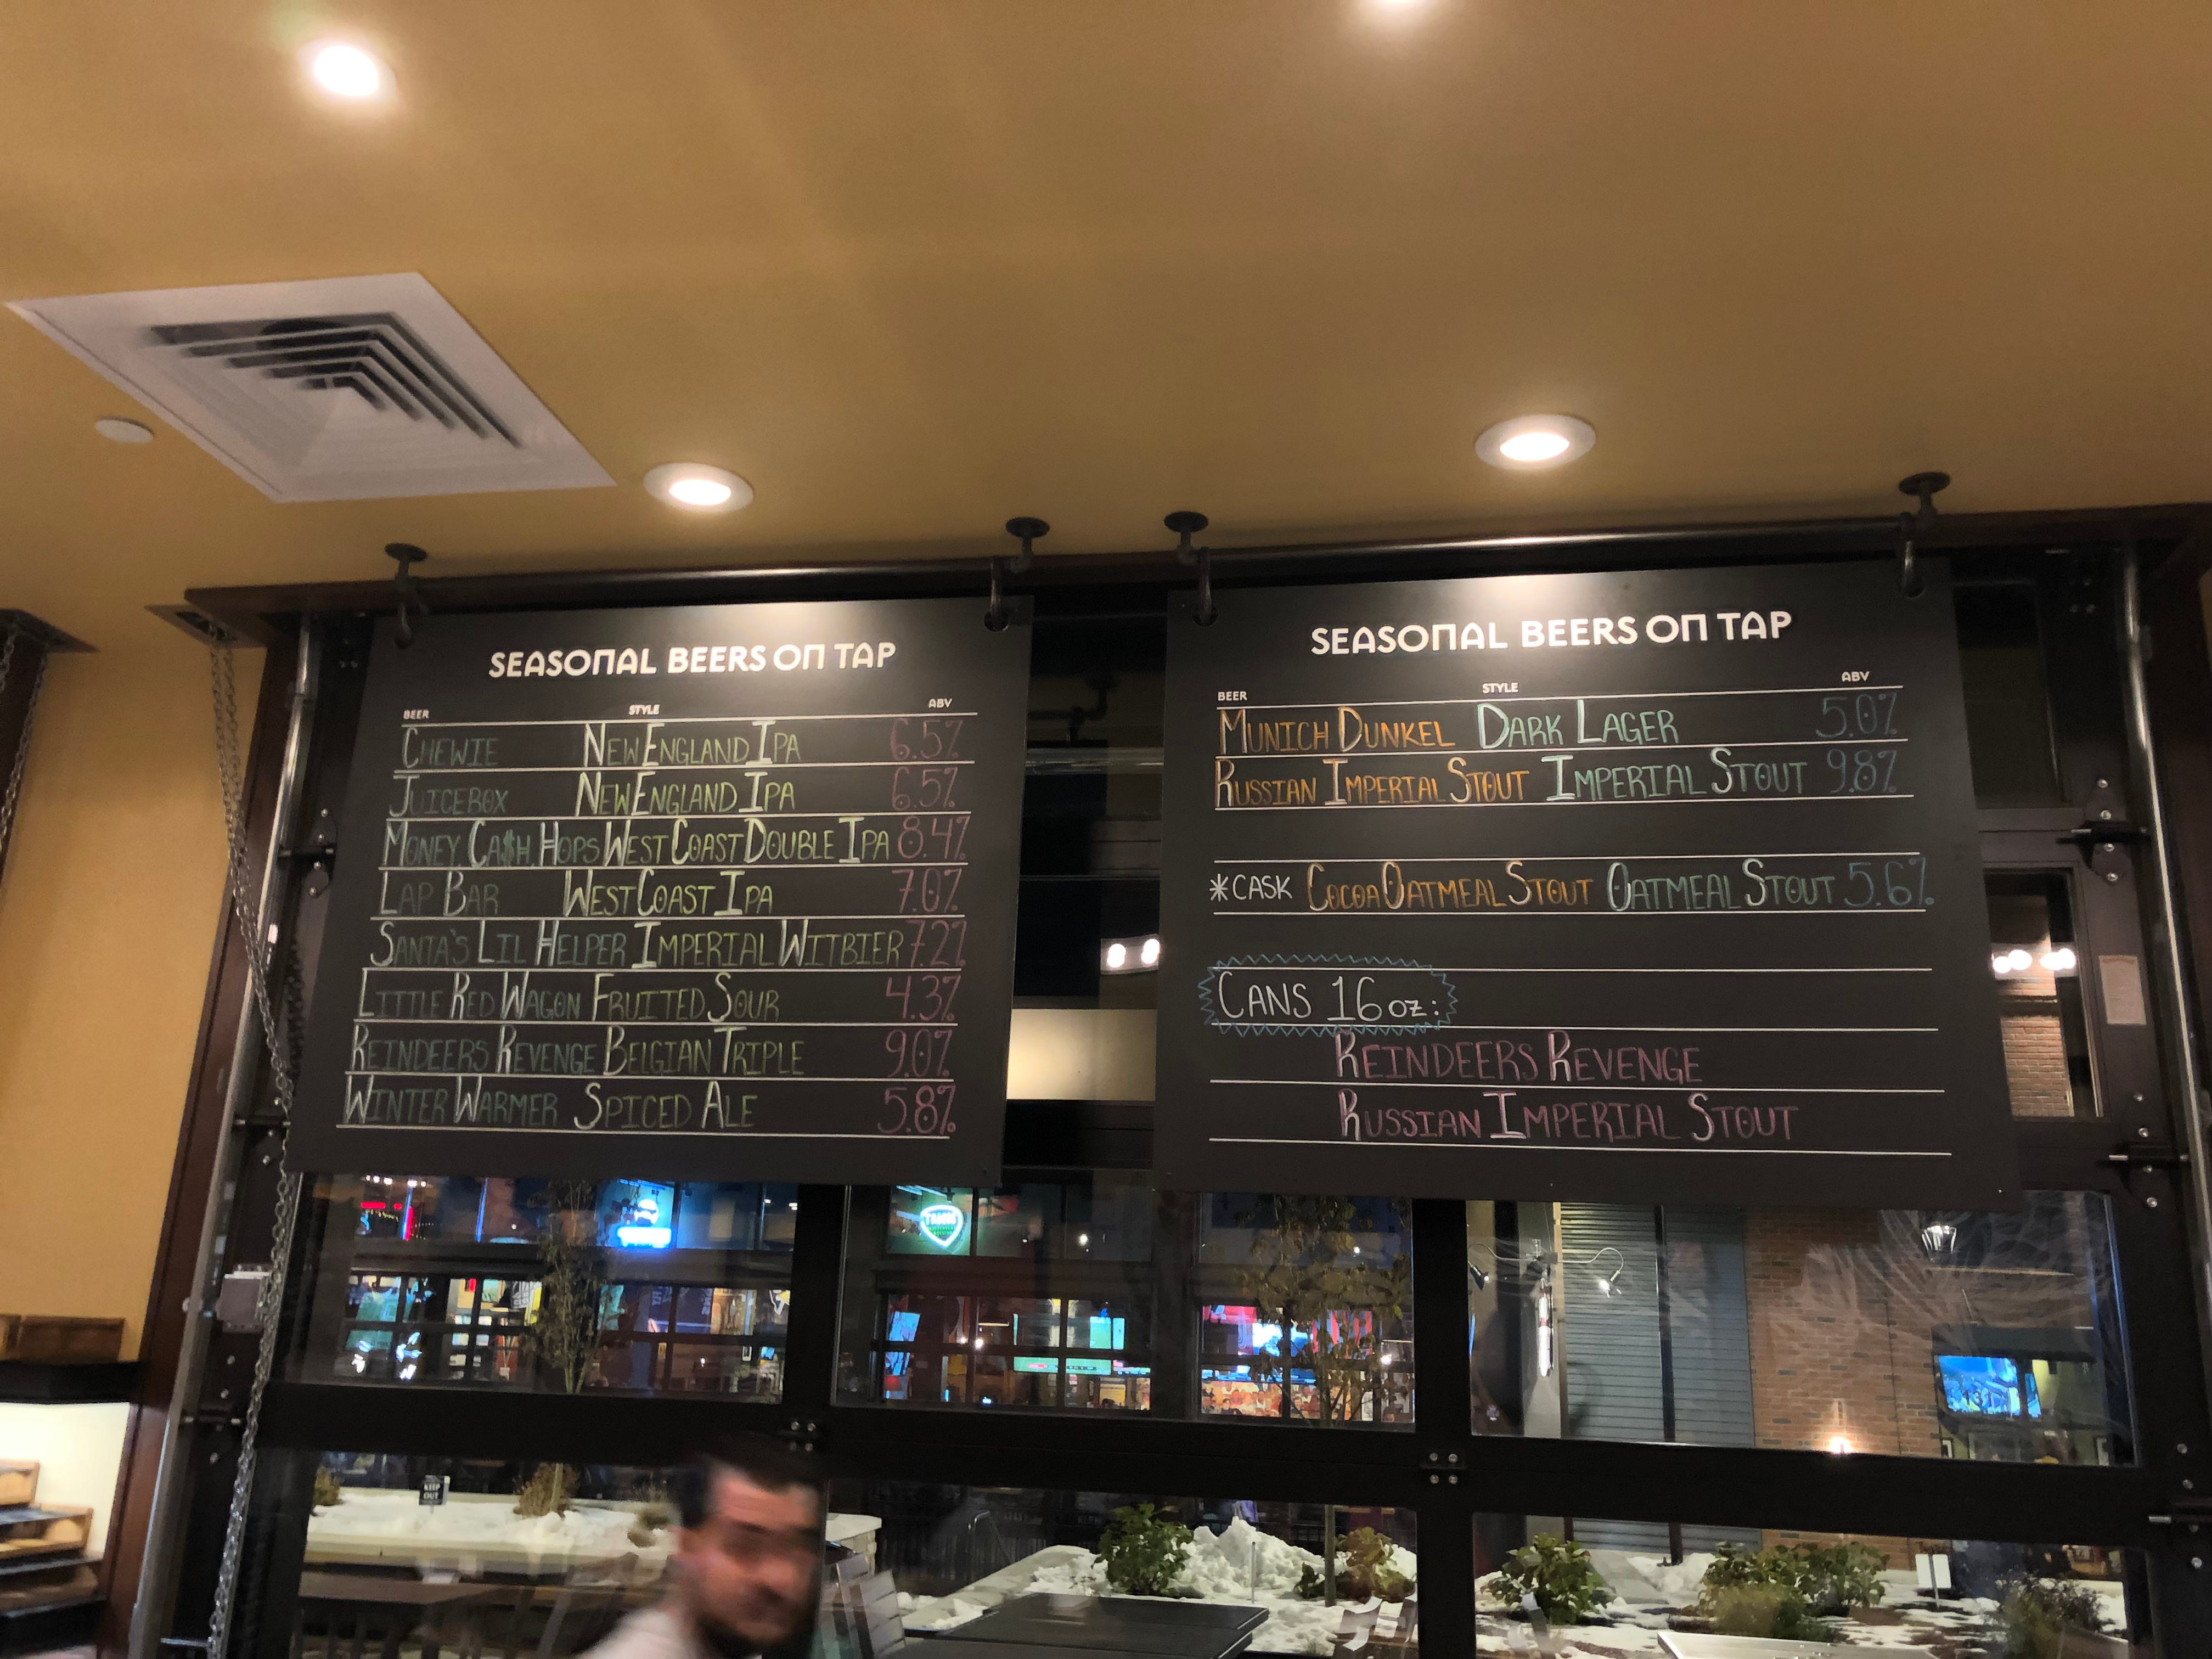 The ever-changing list of seasonal beers at Iron Hill Brewery & Restaurant are written in chalk above the bar.